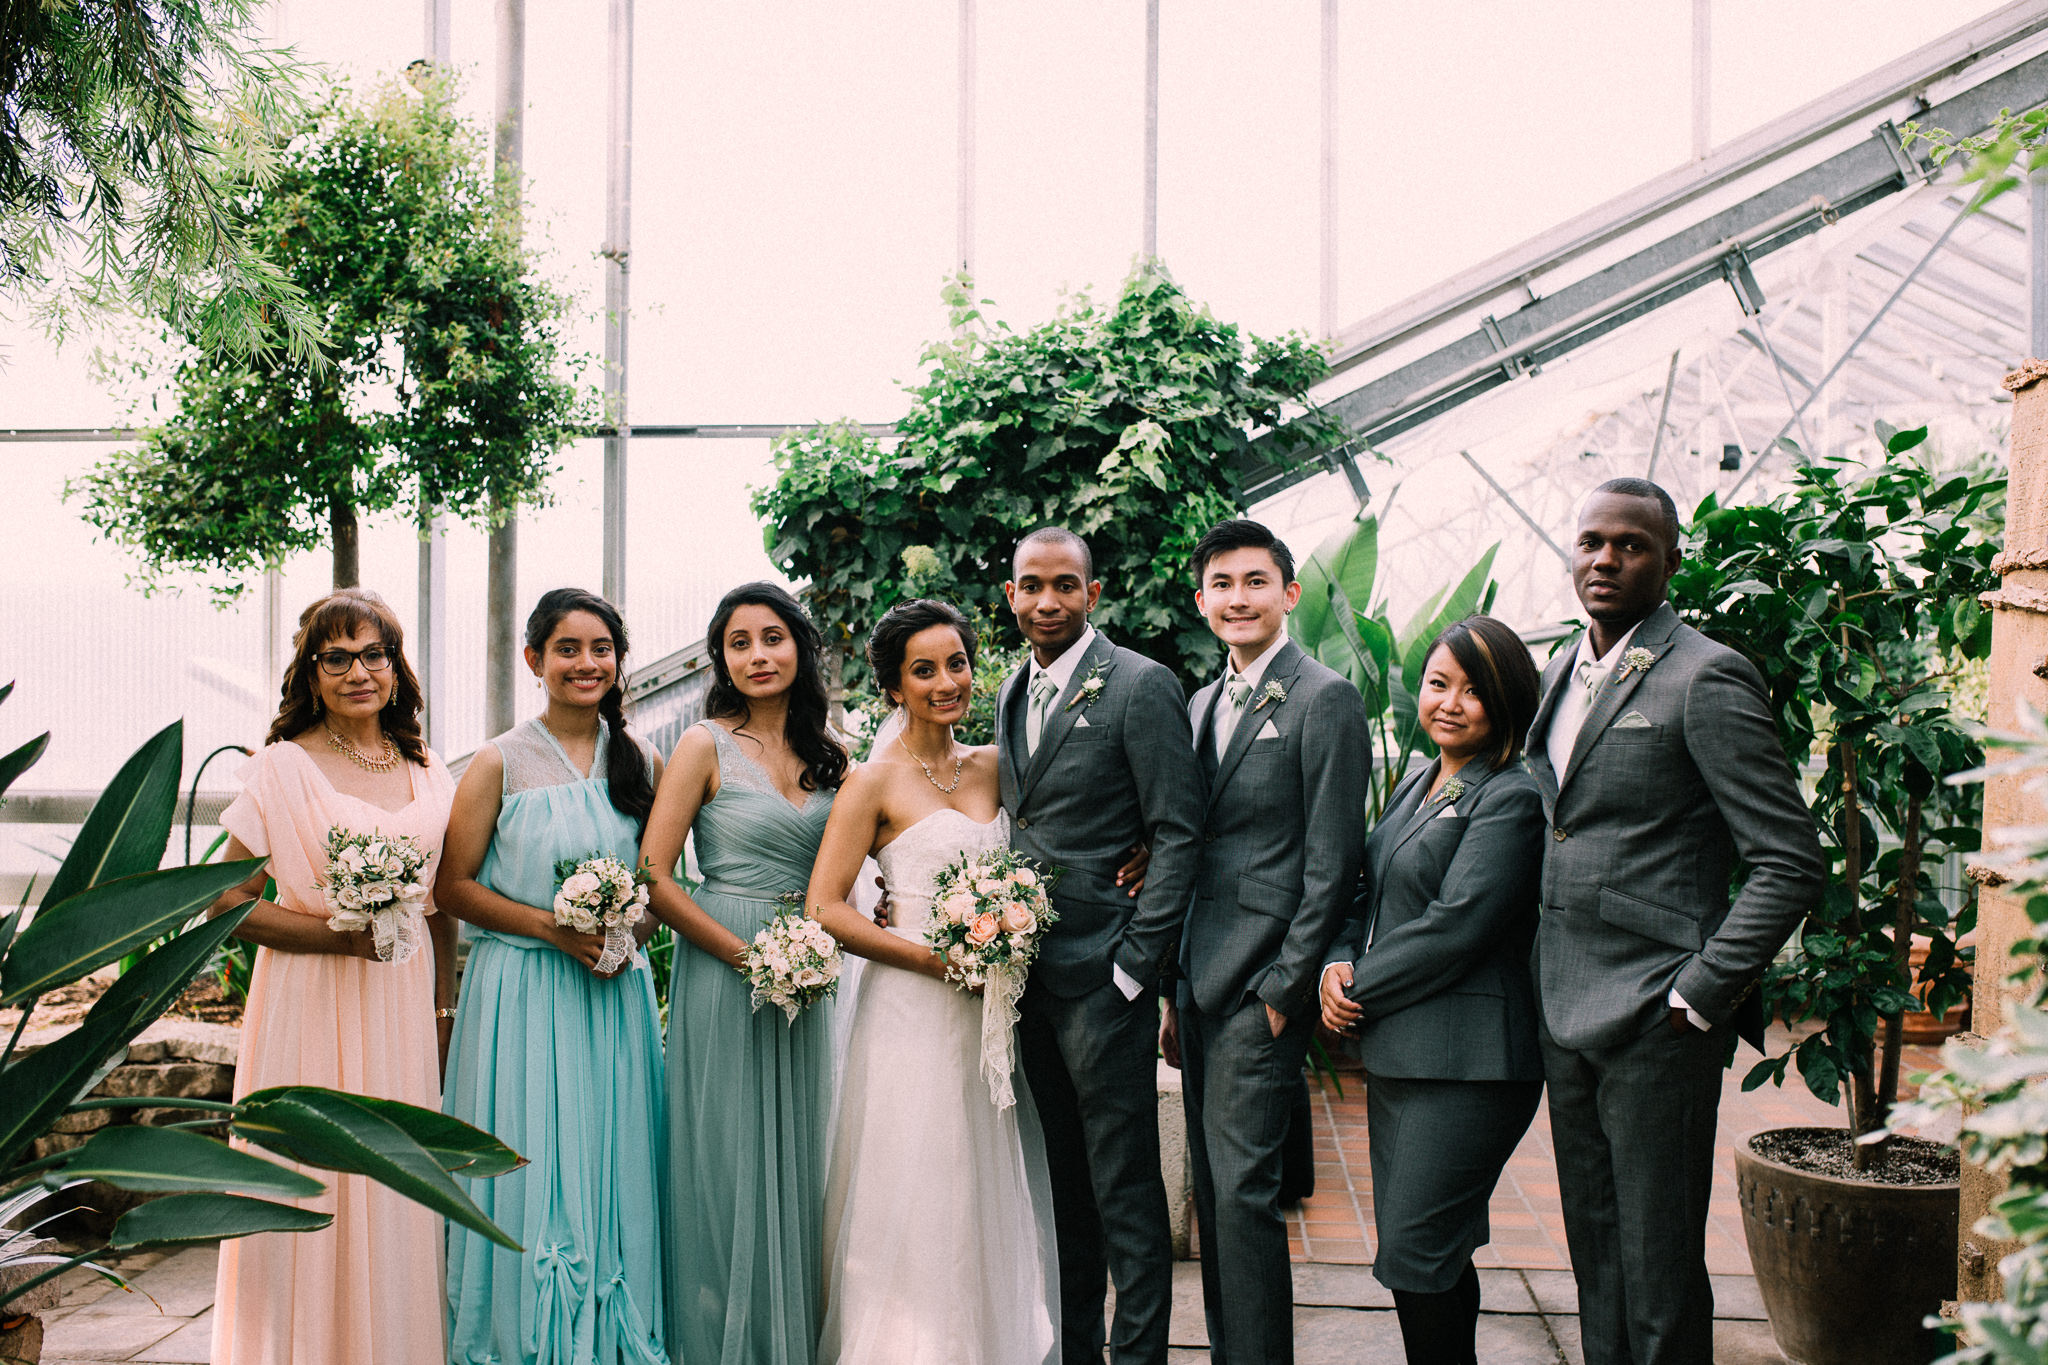 Burlington Fall wedding at Royal Botanical Gardens by Max Wong Photo (23)